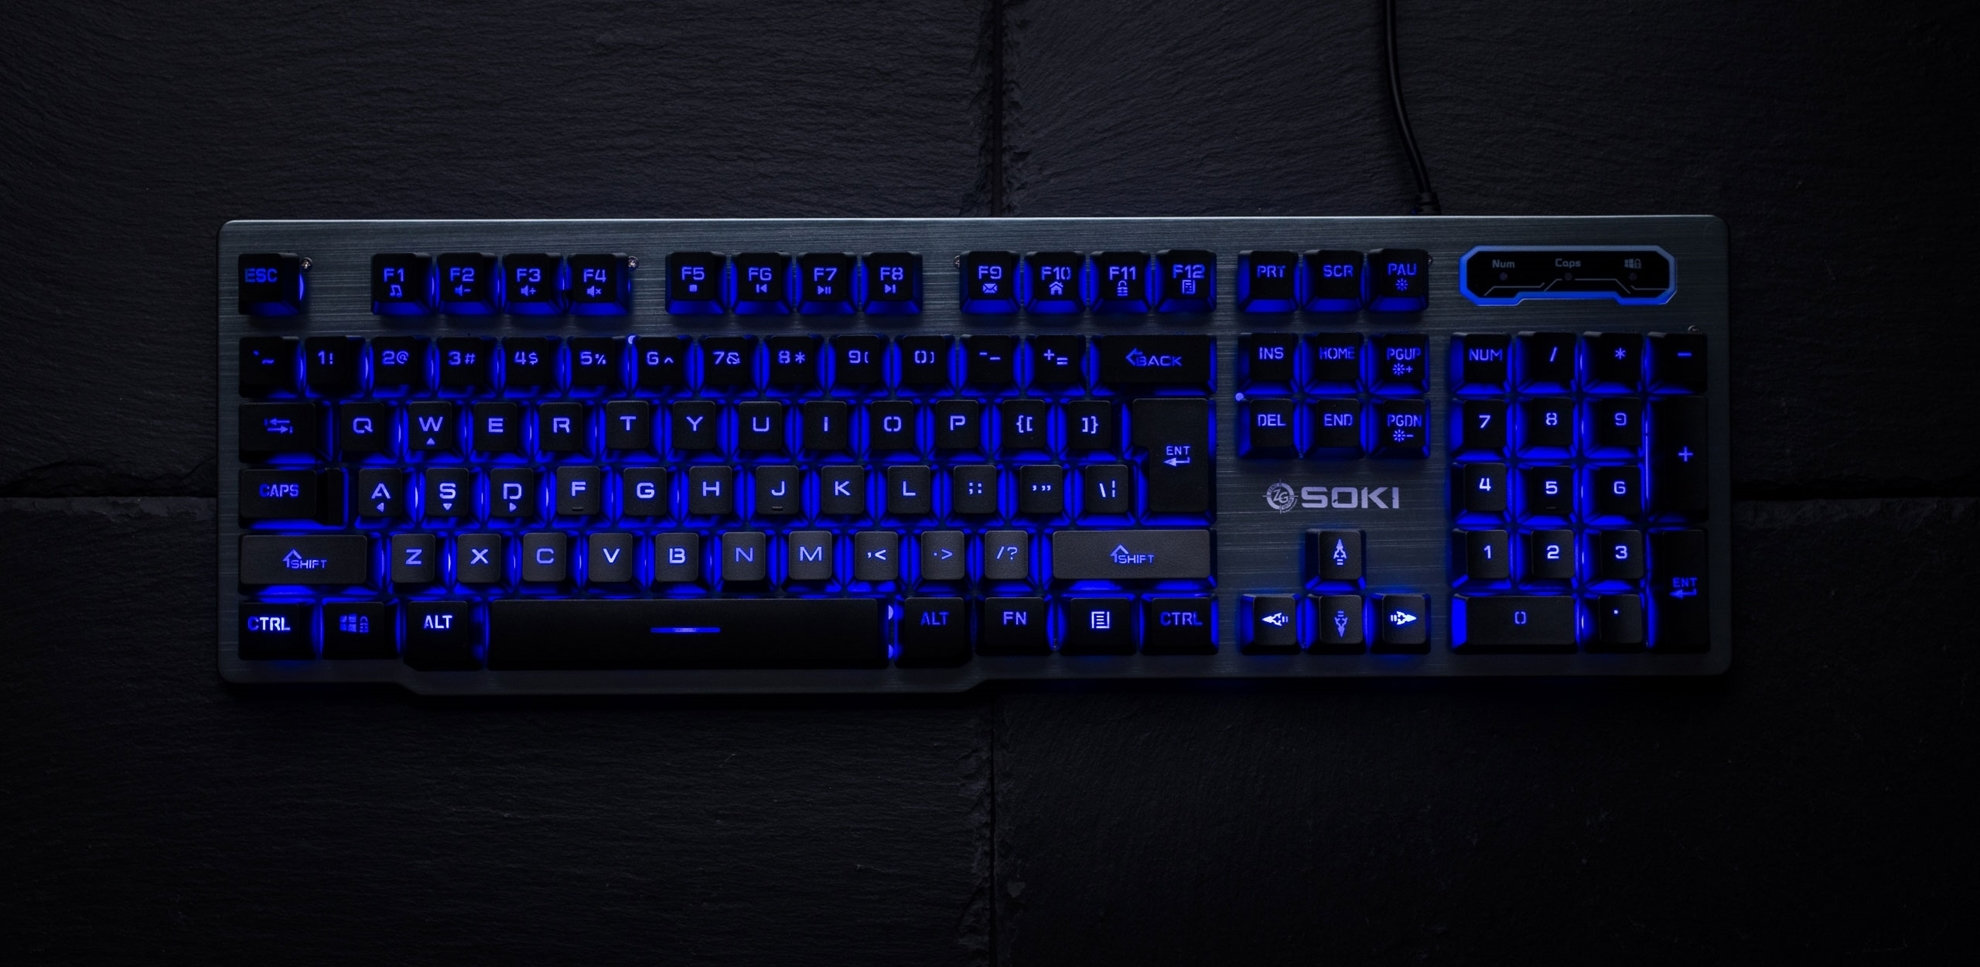 ZeroGround Soki - Gaming keyboard